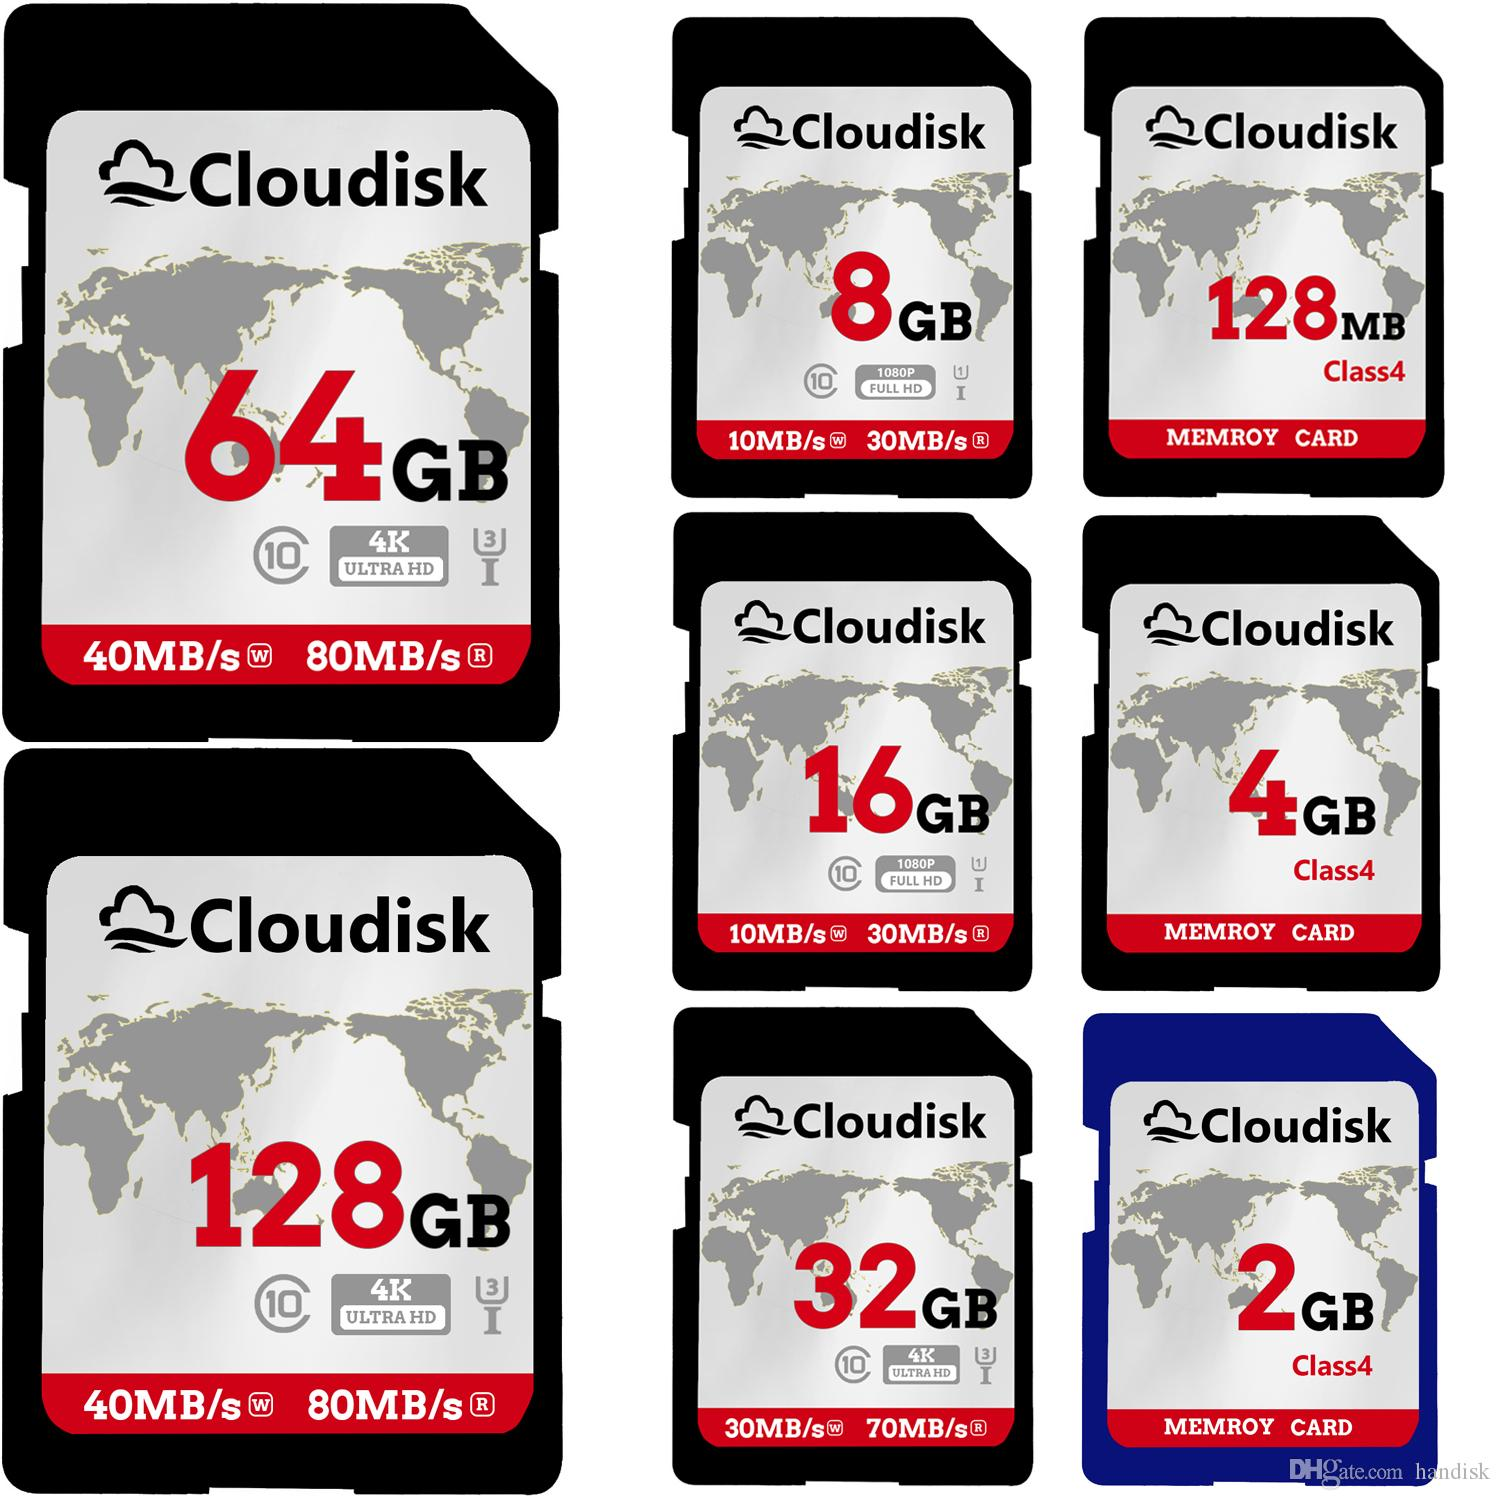 SD Card 128MB 1GB 2GB 4GB 8GB 16GB 32GB 64GB 128GB SDXC UHS-I Card - C10, U3, V30, 4K UHD, SD Flash Memory Card